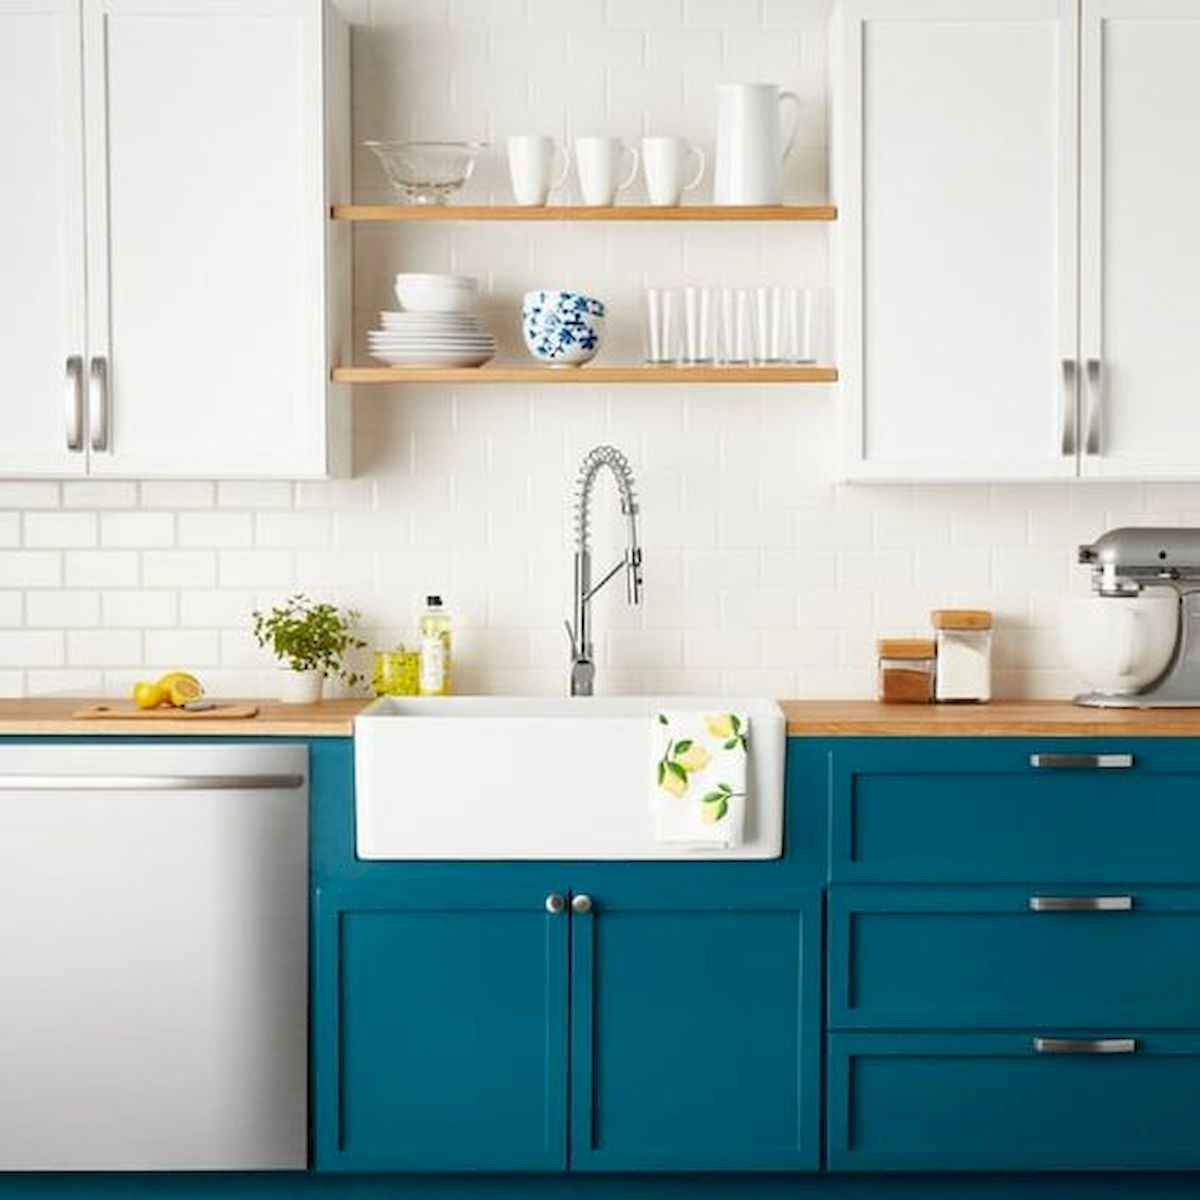 60 Lovely Painted Kitchen Cabinets Two Tone Design Ideas (8)